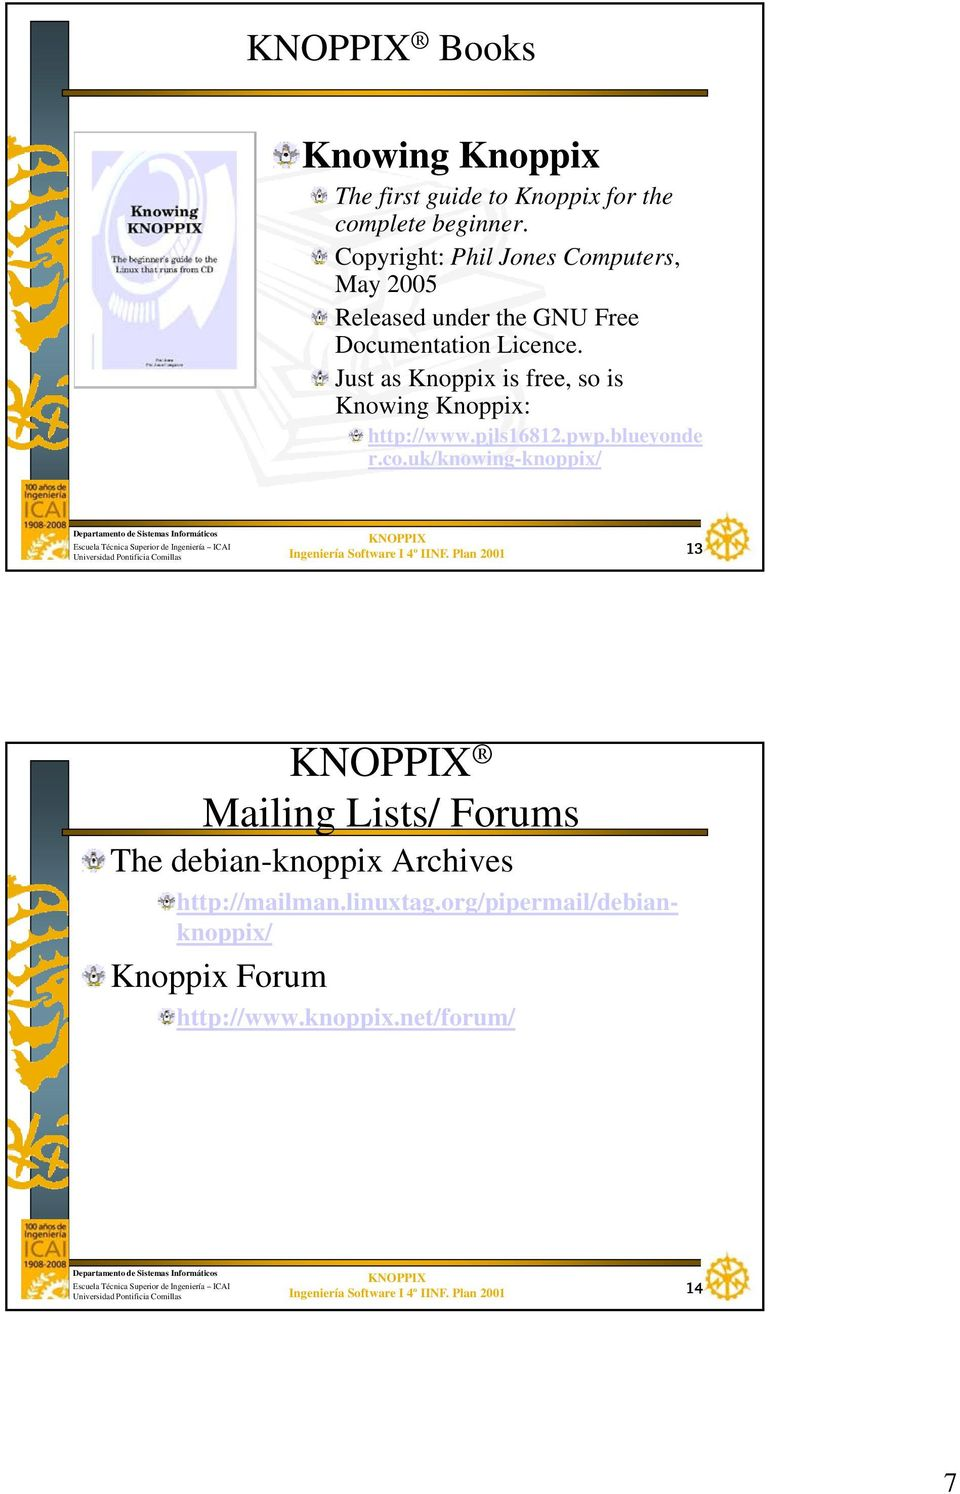 Just as Knoppix is free, so is Knowing Knoppix: http://www.pjls16812.pwp.blueyonde r.co.